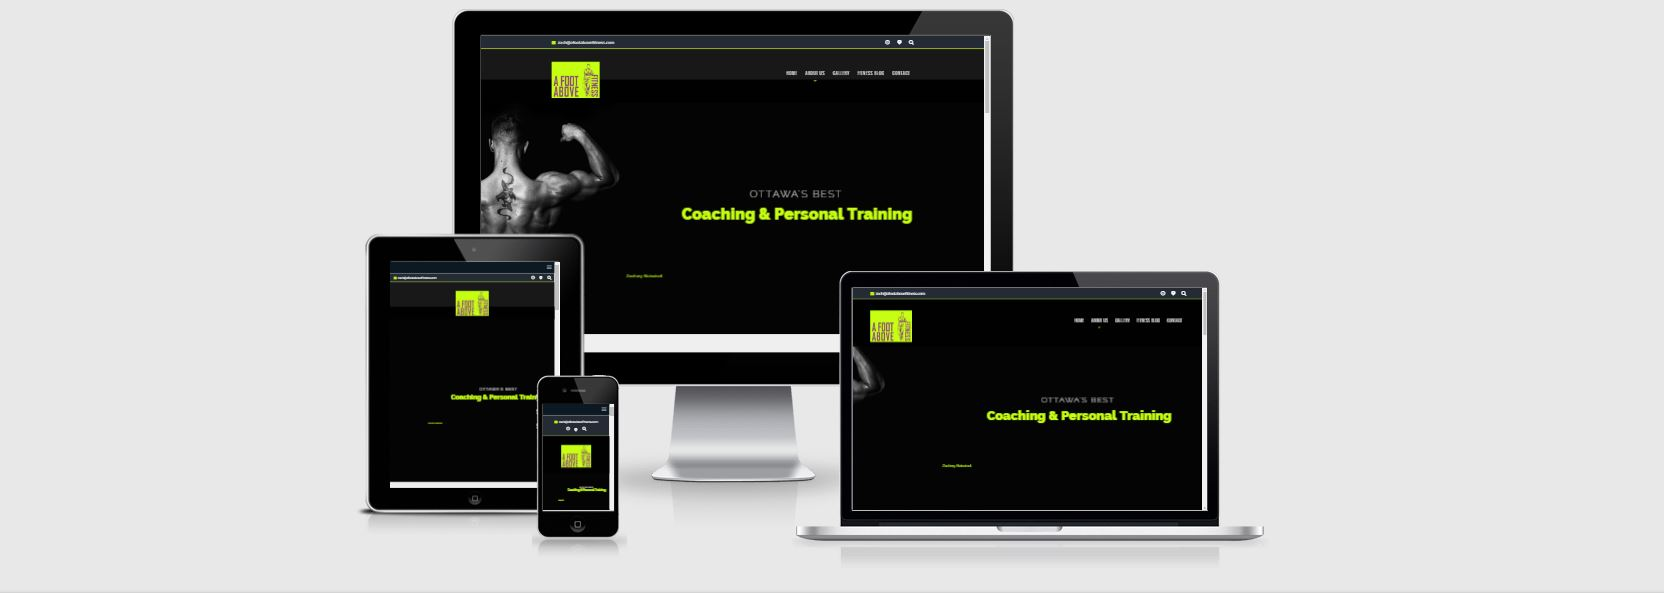 website-design-responsive design-3